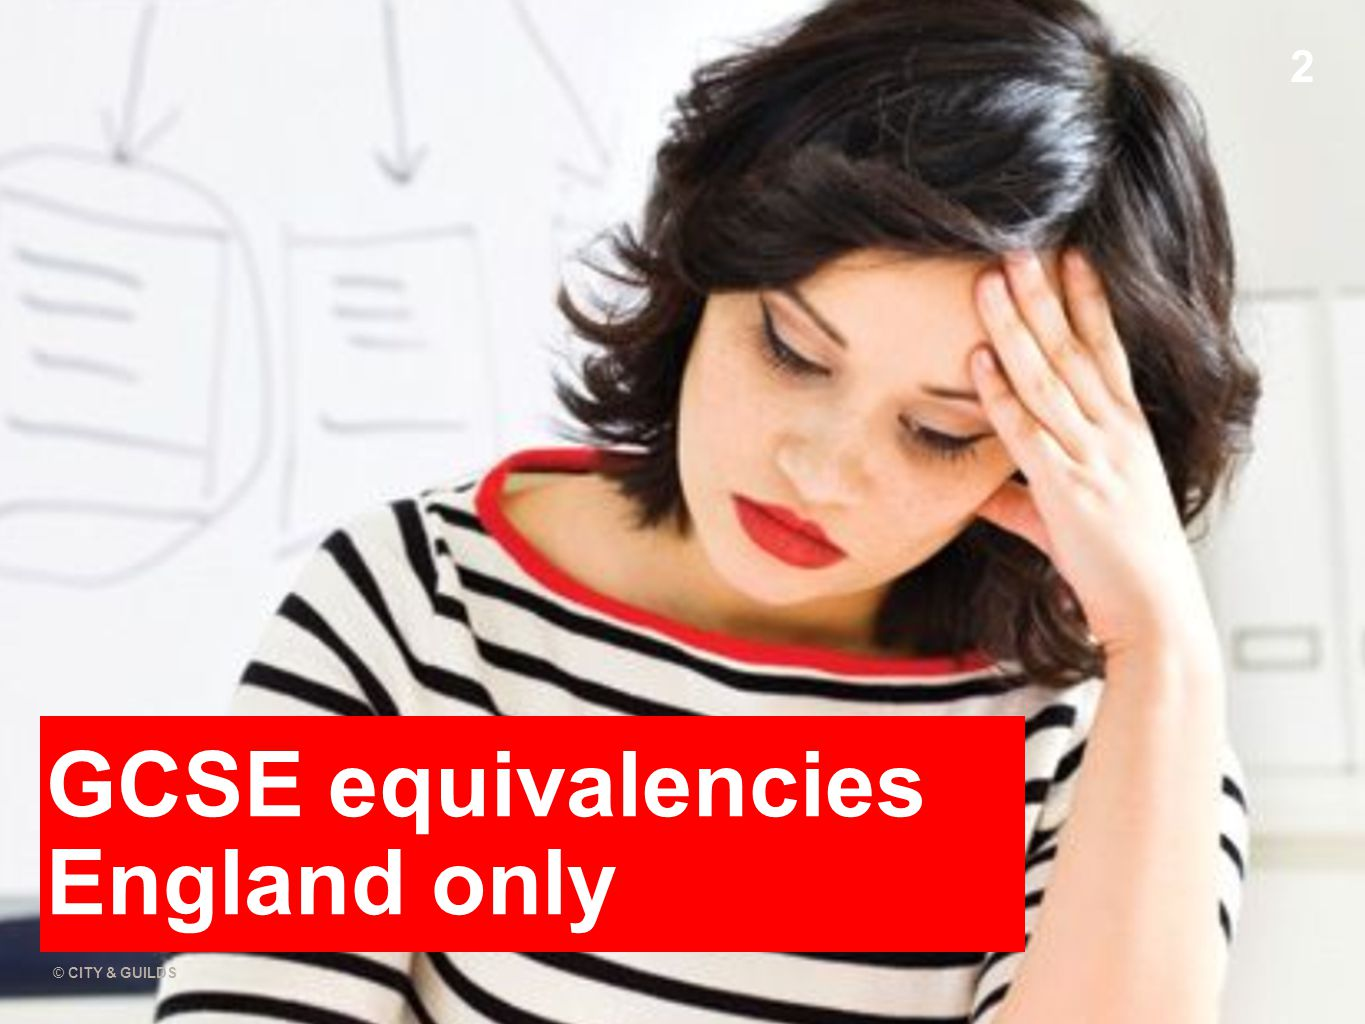 11.02.11 © CITY & GUILDS 2 GCSE equivalencies England only